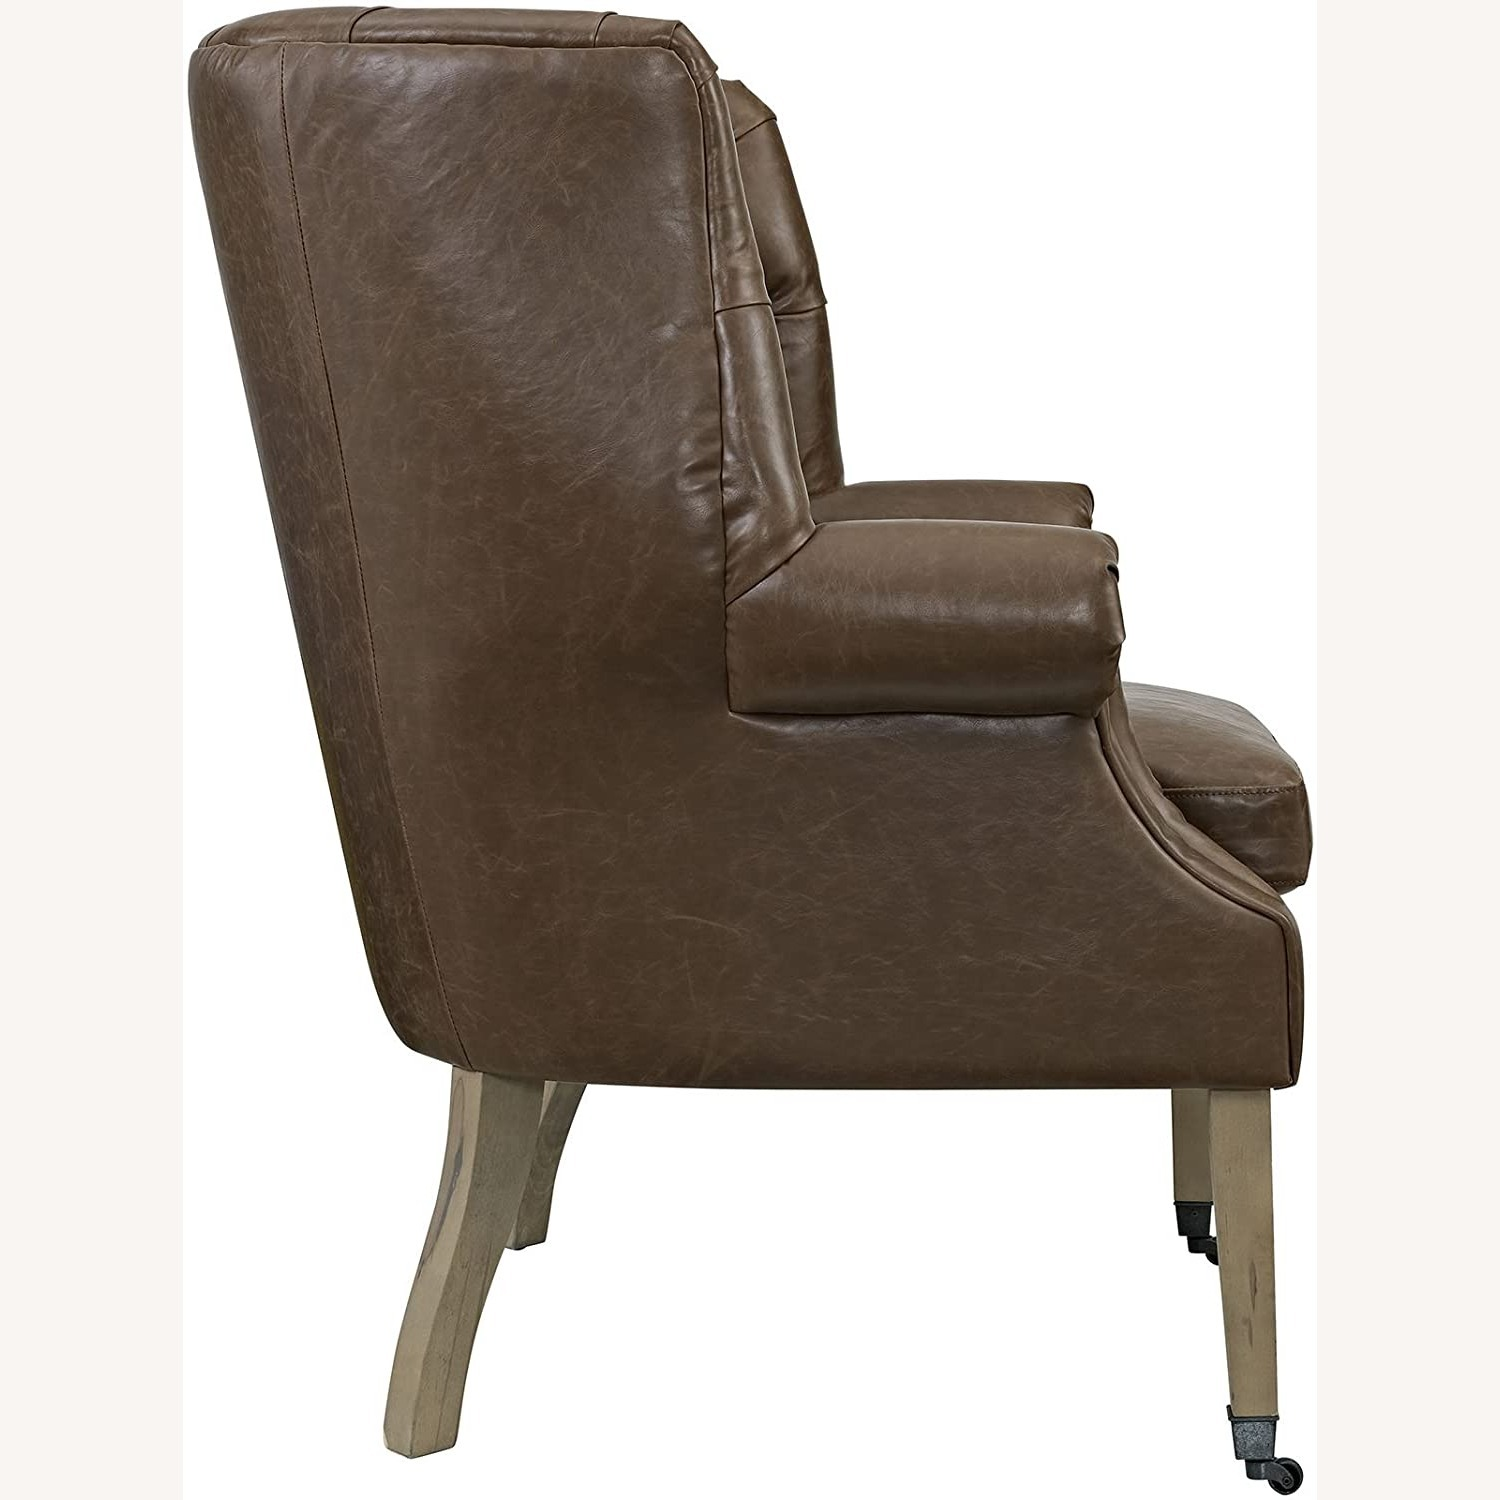 Accent Chair In Brown Vinyl Upholstery Finish - image-1